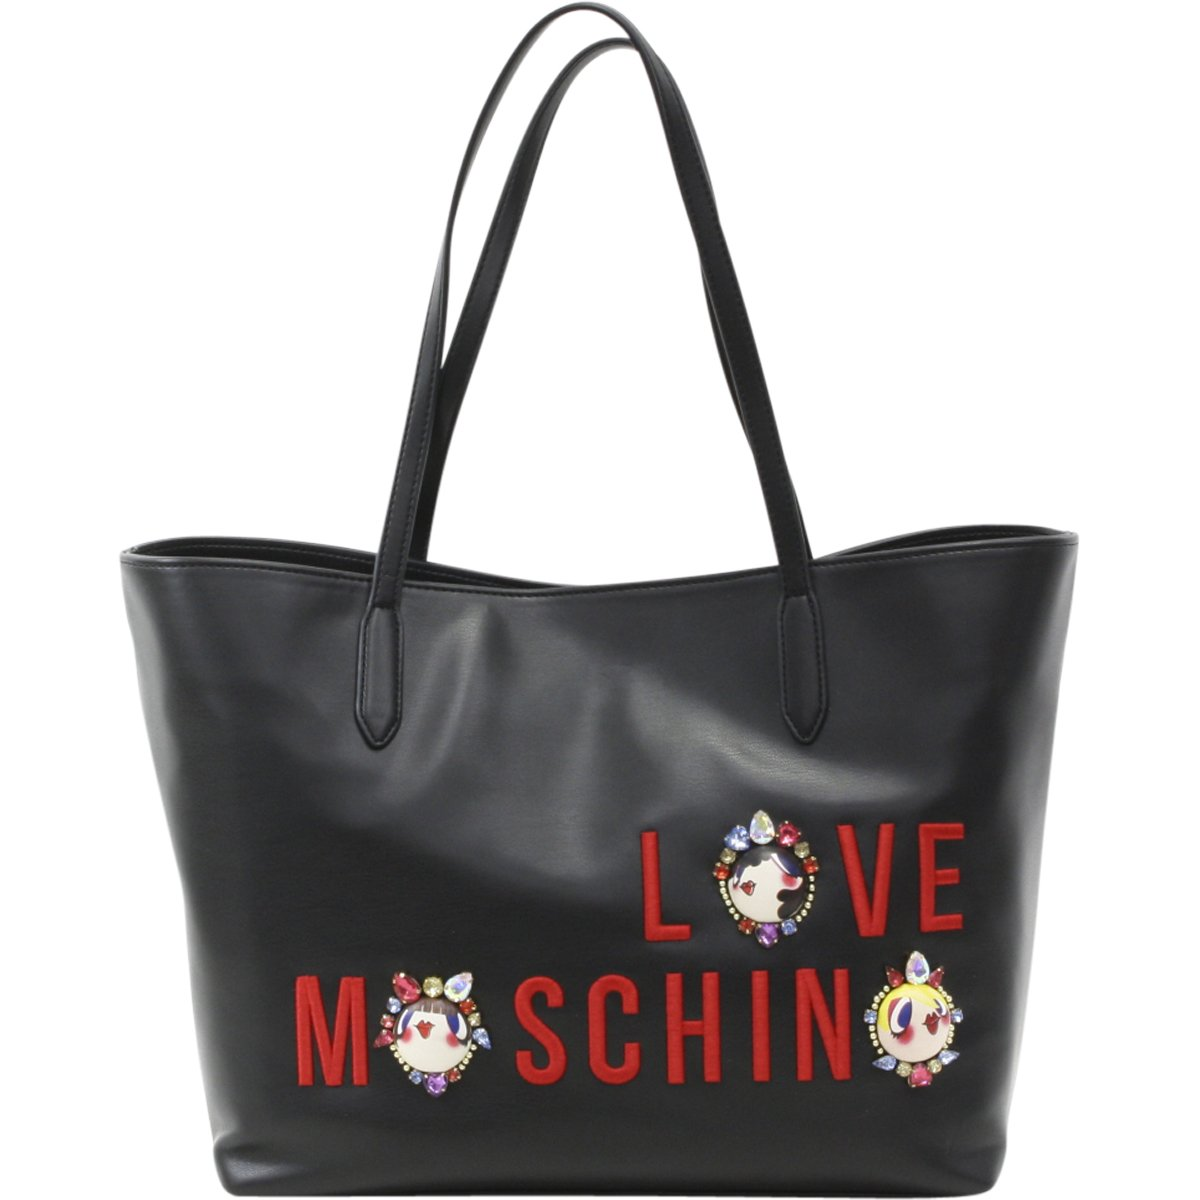 LOVE Moschino Women's Charming Girls Tote Black Handbag